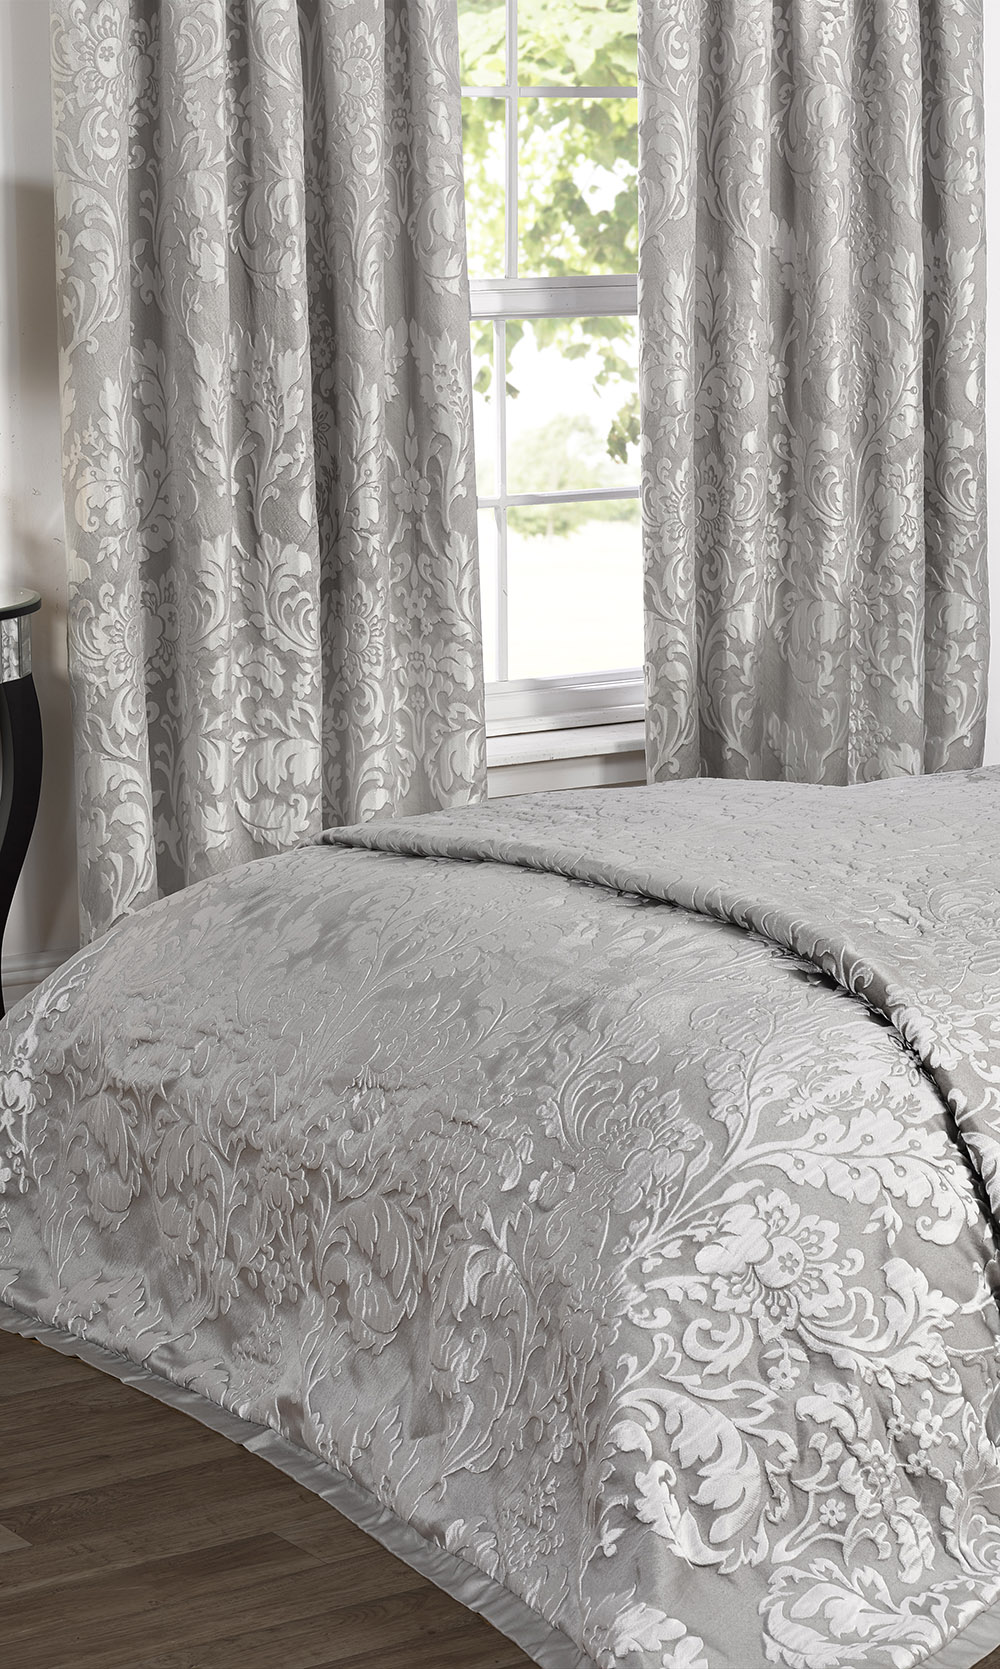 Luxury Charleston Jacquard Damask Lined Curtains in Grey ...